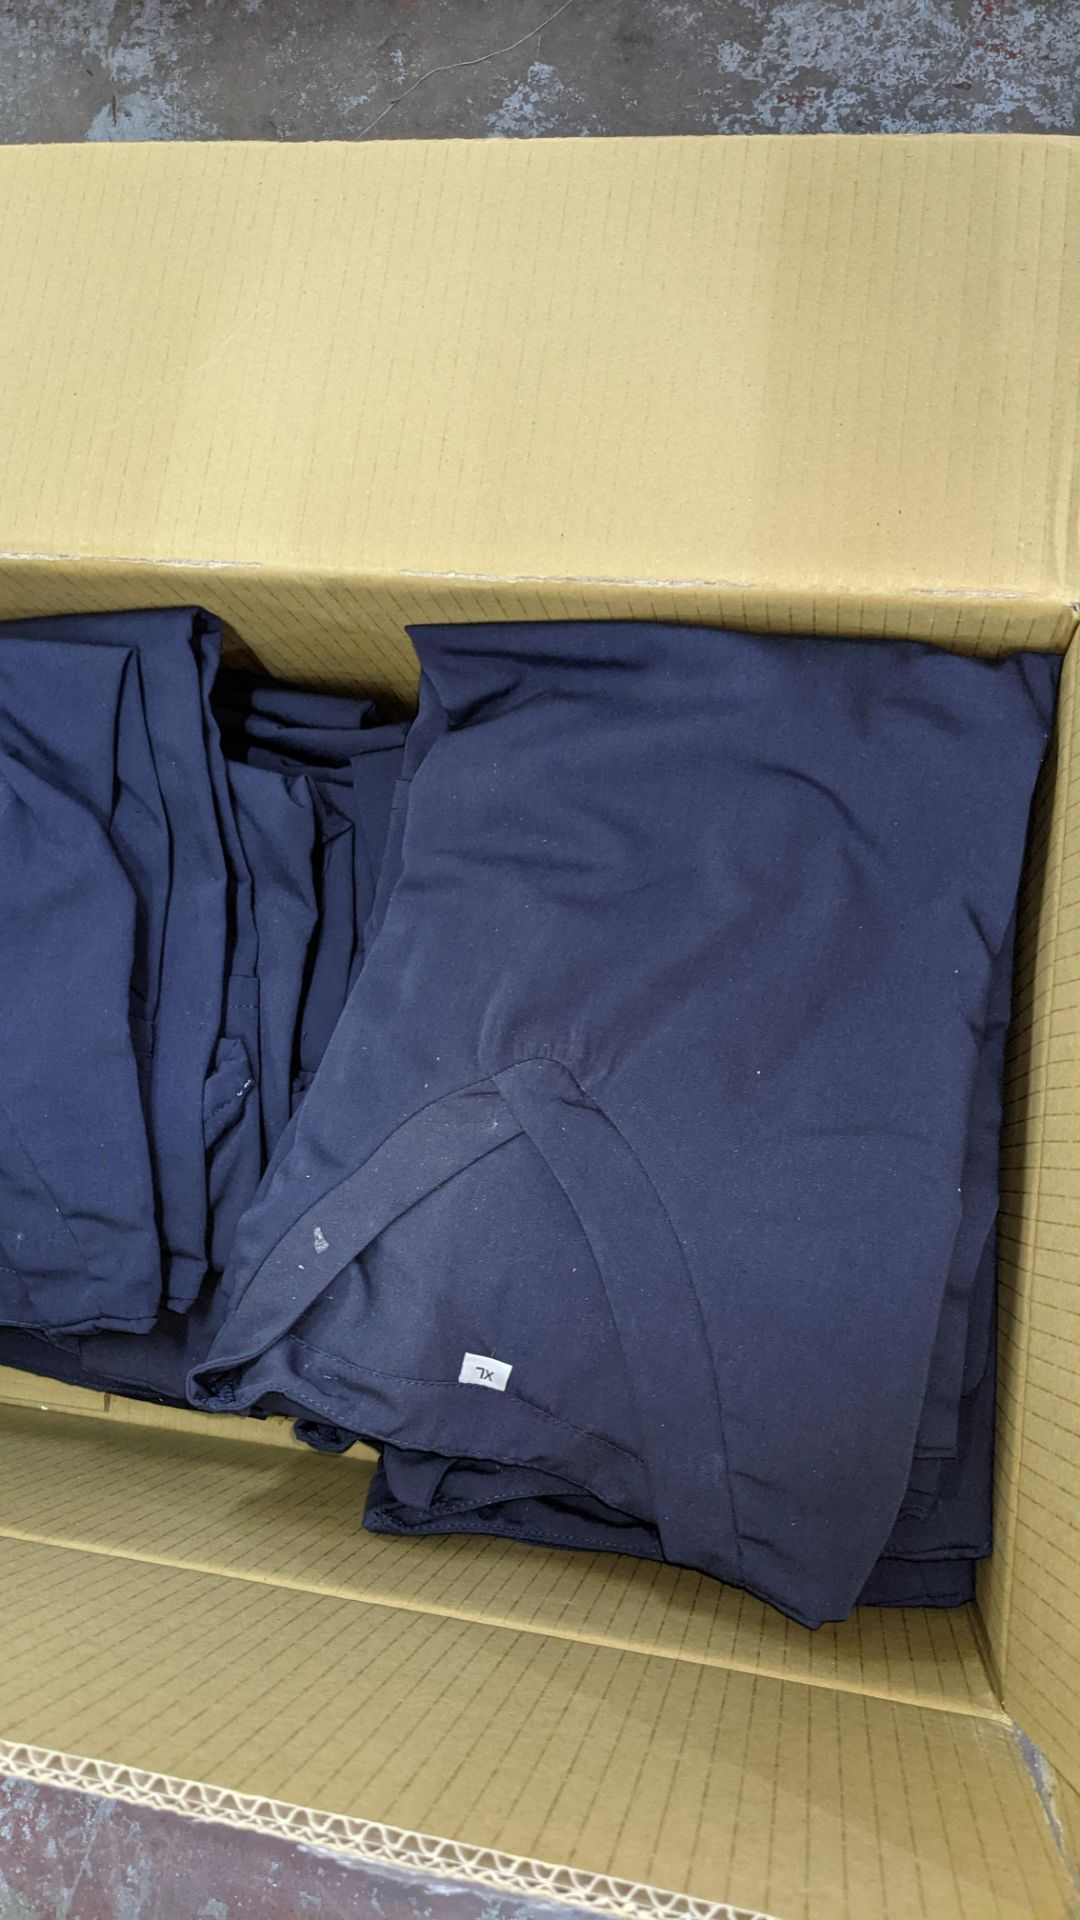 Approx 48 off navy V neck t-shirts - the contents of 2 boxes - Image 6 of 7